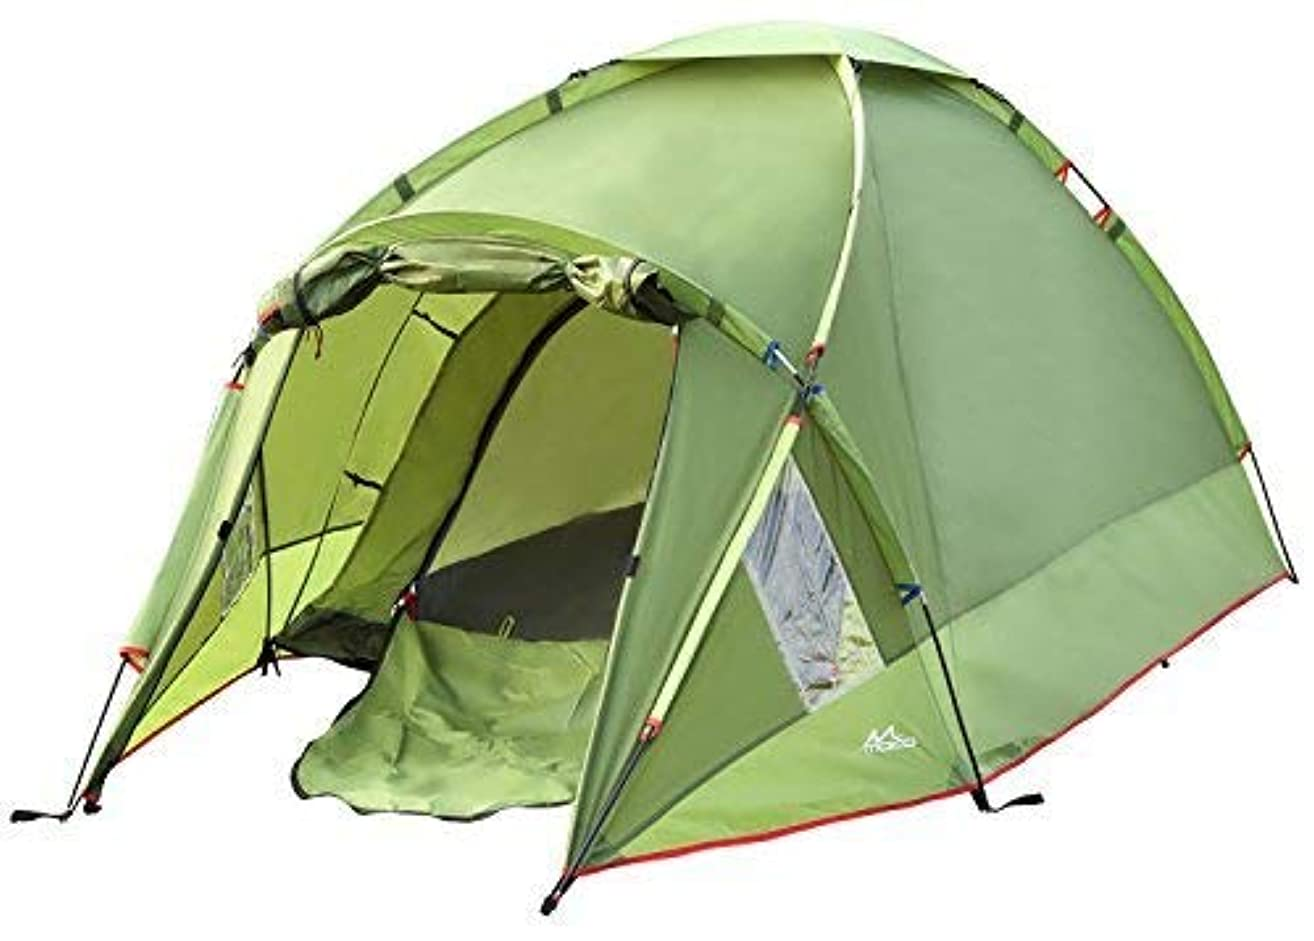 魅力的であることへのアピール動揺させるレインコートMoKo Waterproof Family Camping Tent, Portable 3 Person Outdoor Instant Cabin, 4-Season Double Layer, Army green [並行輸入品]